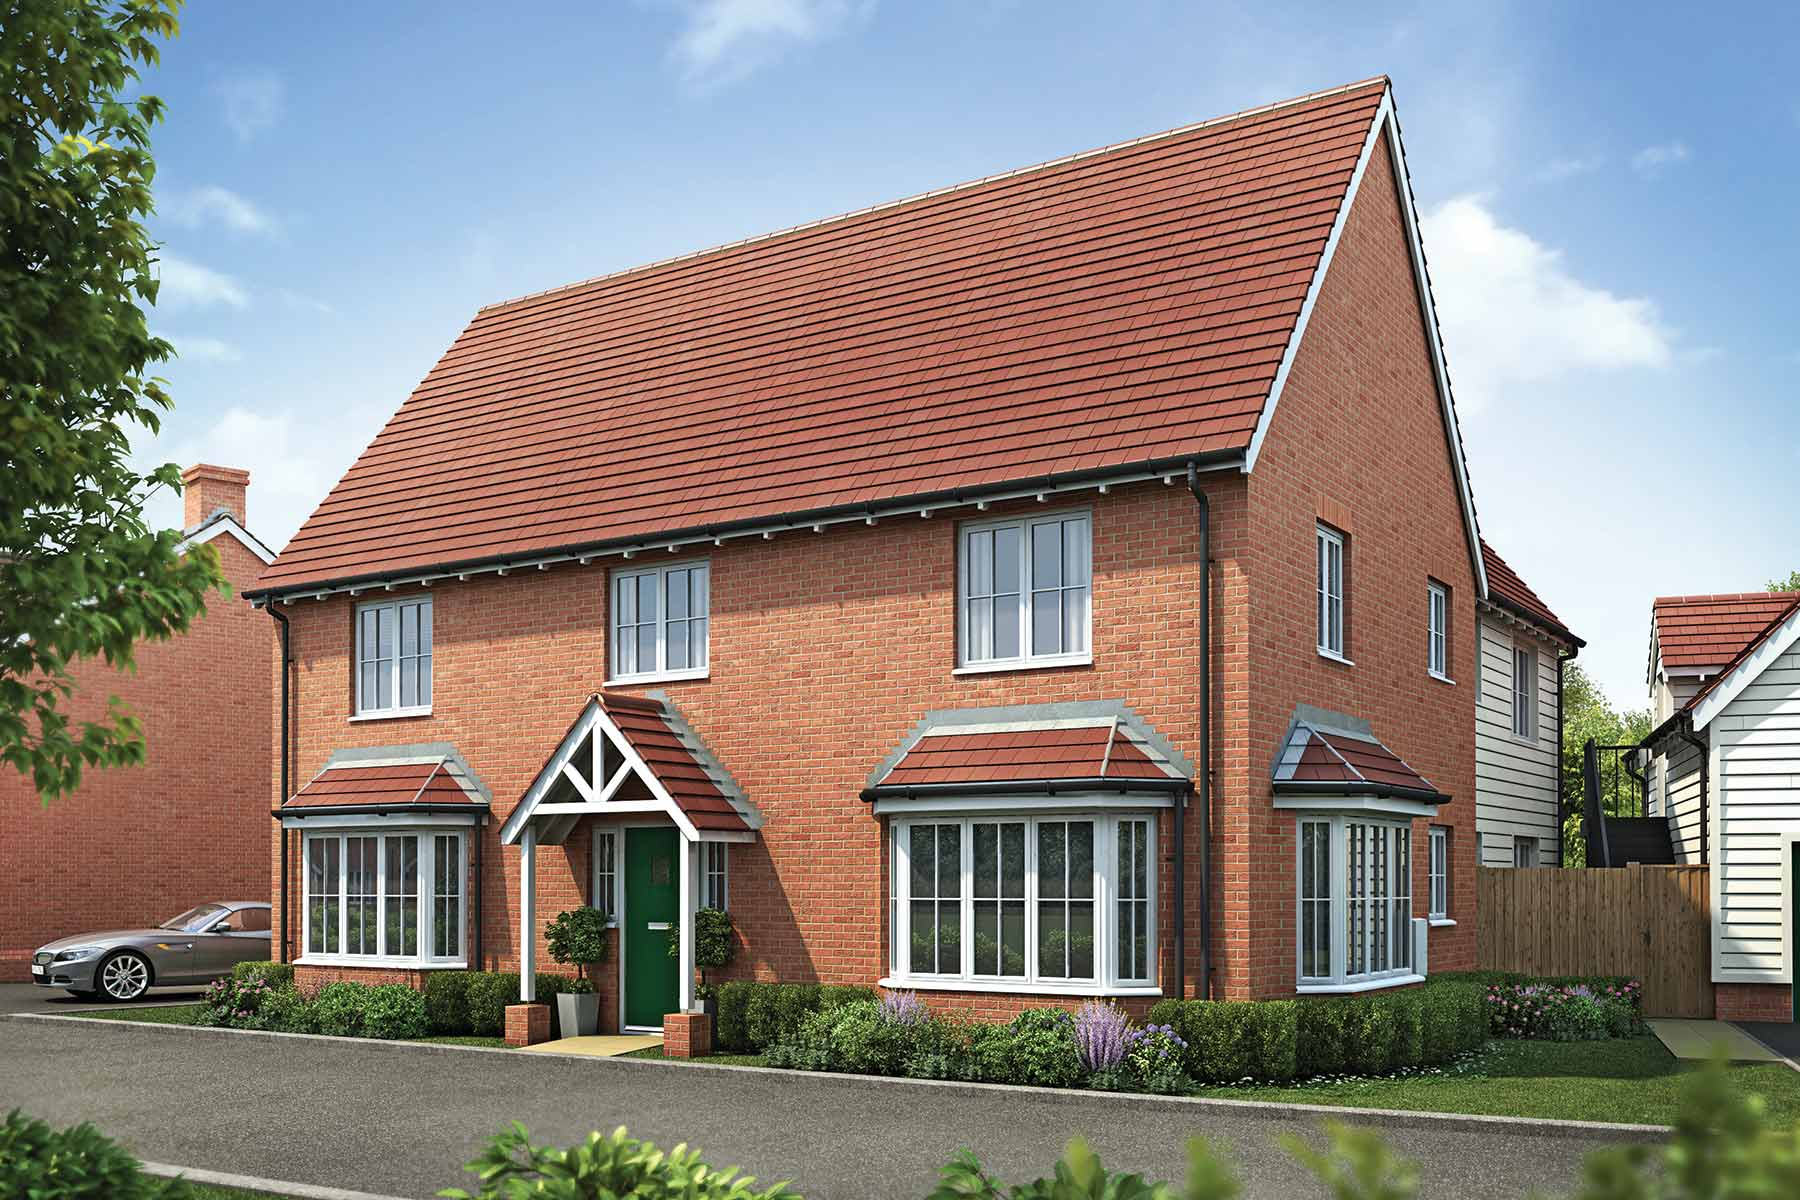 The Weaver, Taylor Wimpey at Olstead Grange, Felsted, Essex